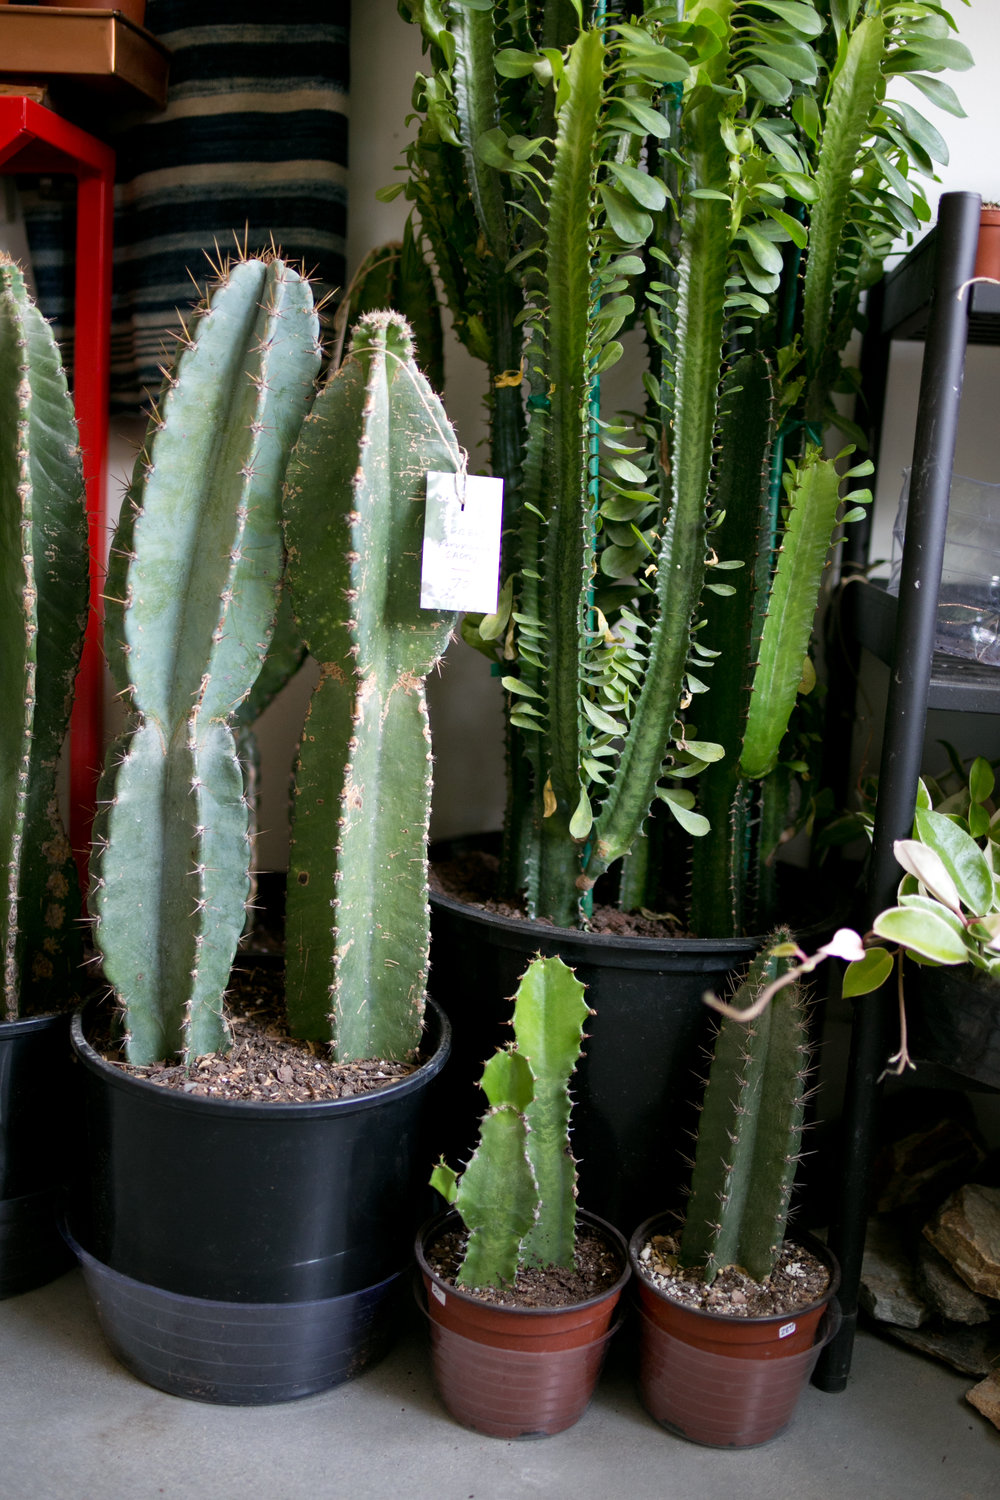 Large cacti, like this Mexican Fence Post Cactus ( Pachycereus marginatus ), can add visual interest to any outdoor space.